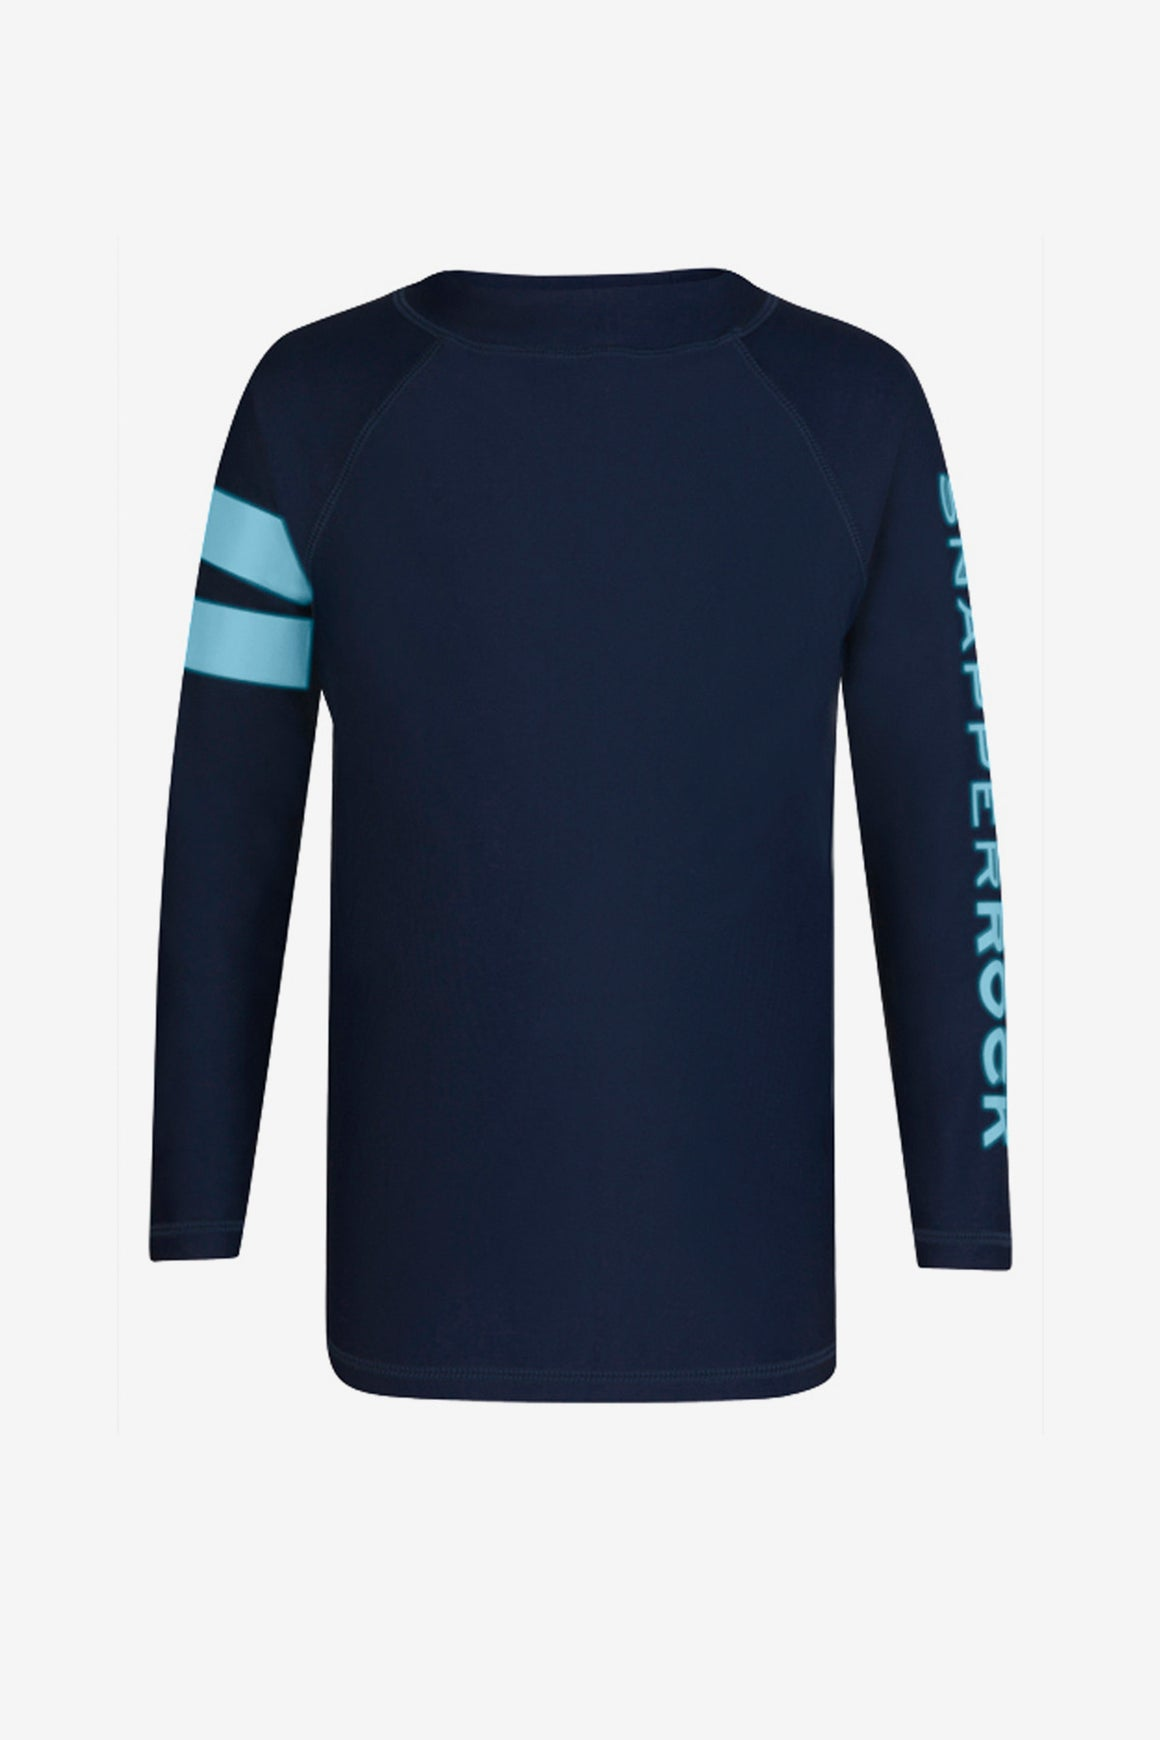 Navy Long-Sleeve Rash Guard